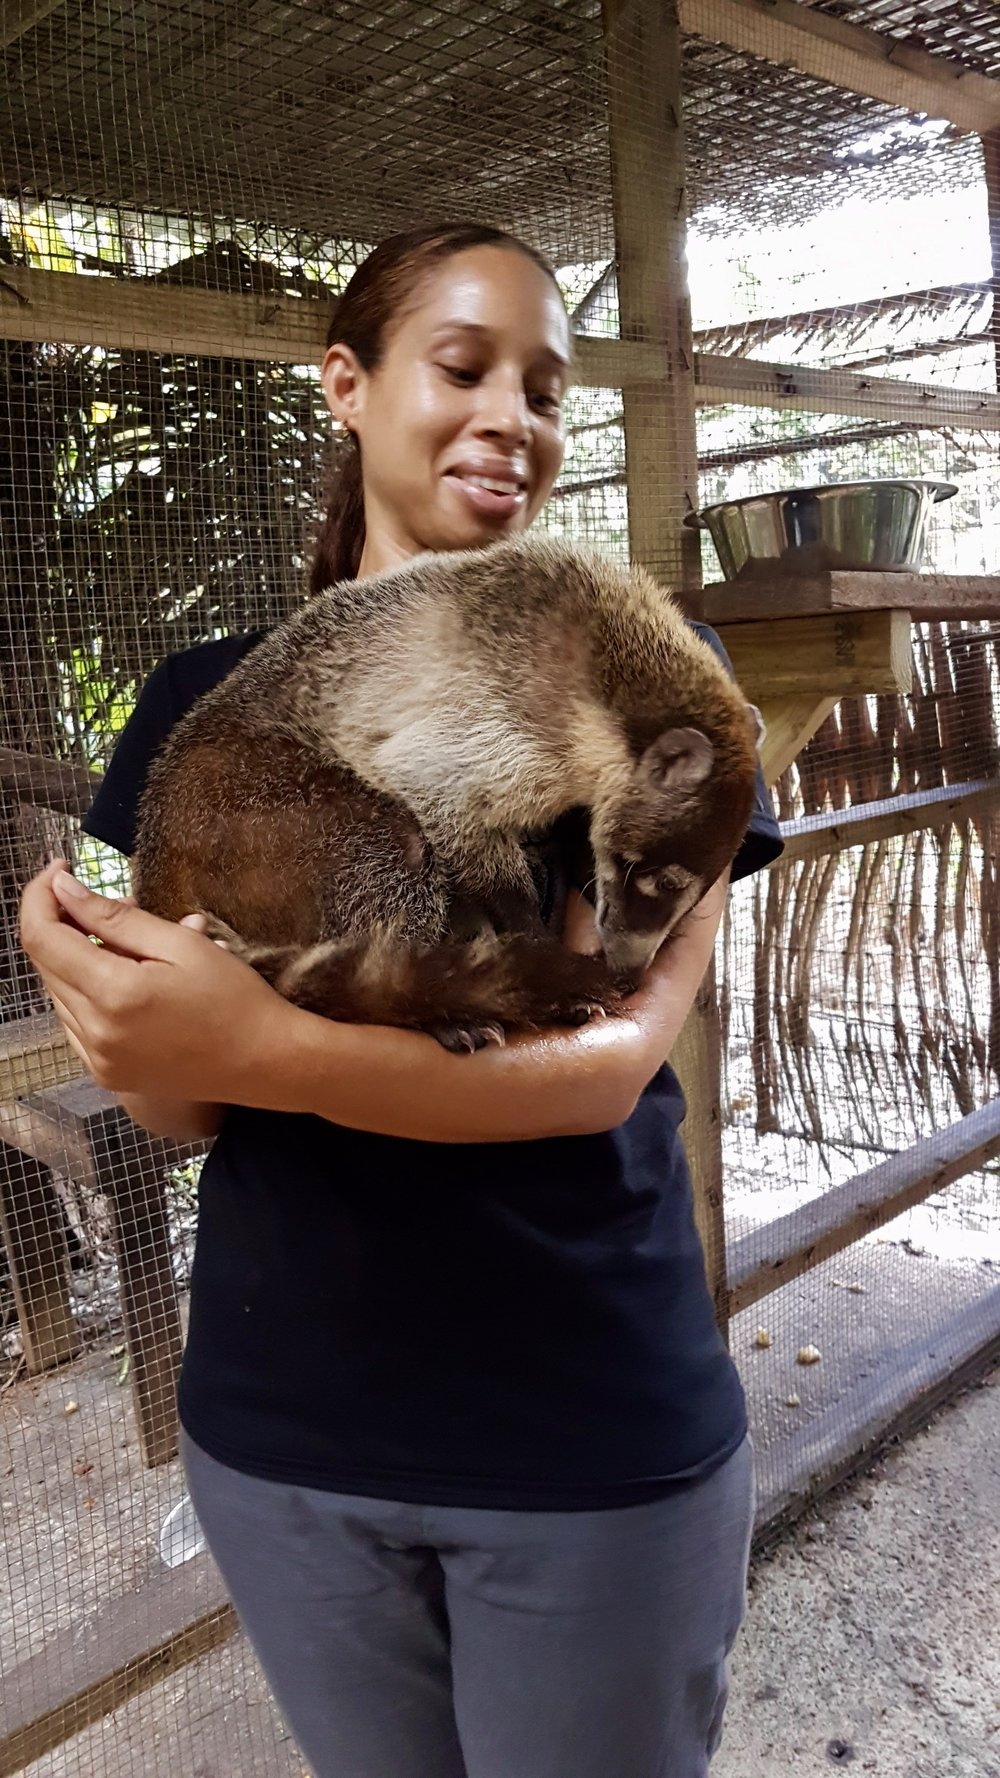 Cristal and her best bud Clarence the coatimundi.